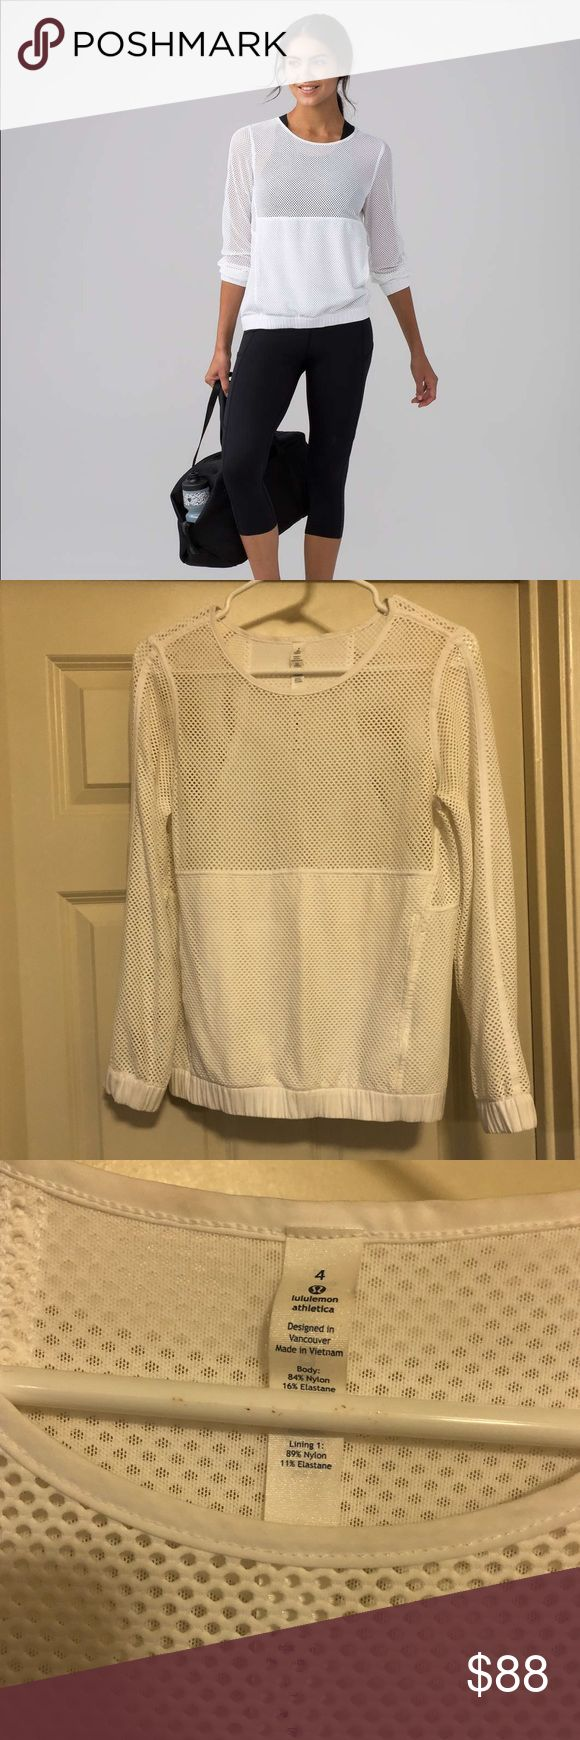 Lululemon Mesh on Mesh Popover Size 4 In excellent condition! Only worn once on a light walk no signs of wear. Purchase will include original tag and a lululemon shopping bag.   Feel the summer breeze on your skin during outdoor boot camp classes or on your commute home from the beach in this pullover made from two types of breathable Mesh fabric. Mesh fabric is lightweight and breathable. lululemon athletica Tops